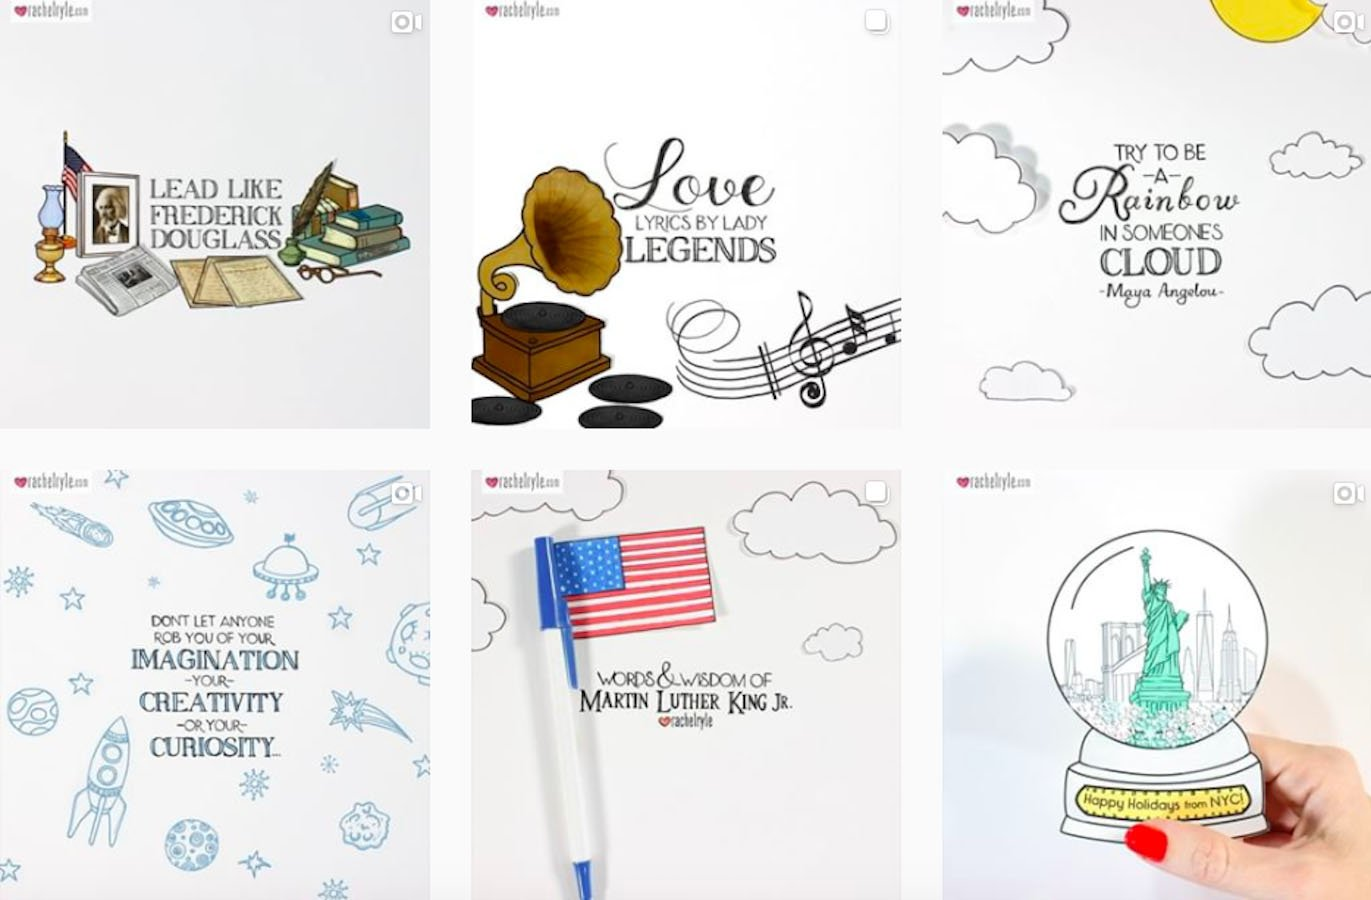 Web Design Inspiration: 110+ Accounts On Instagram and 10+ Best UX & Web Design Books in 2020 - rachelryle